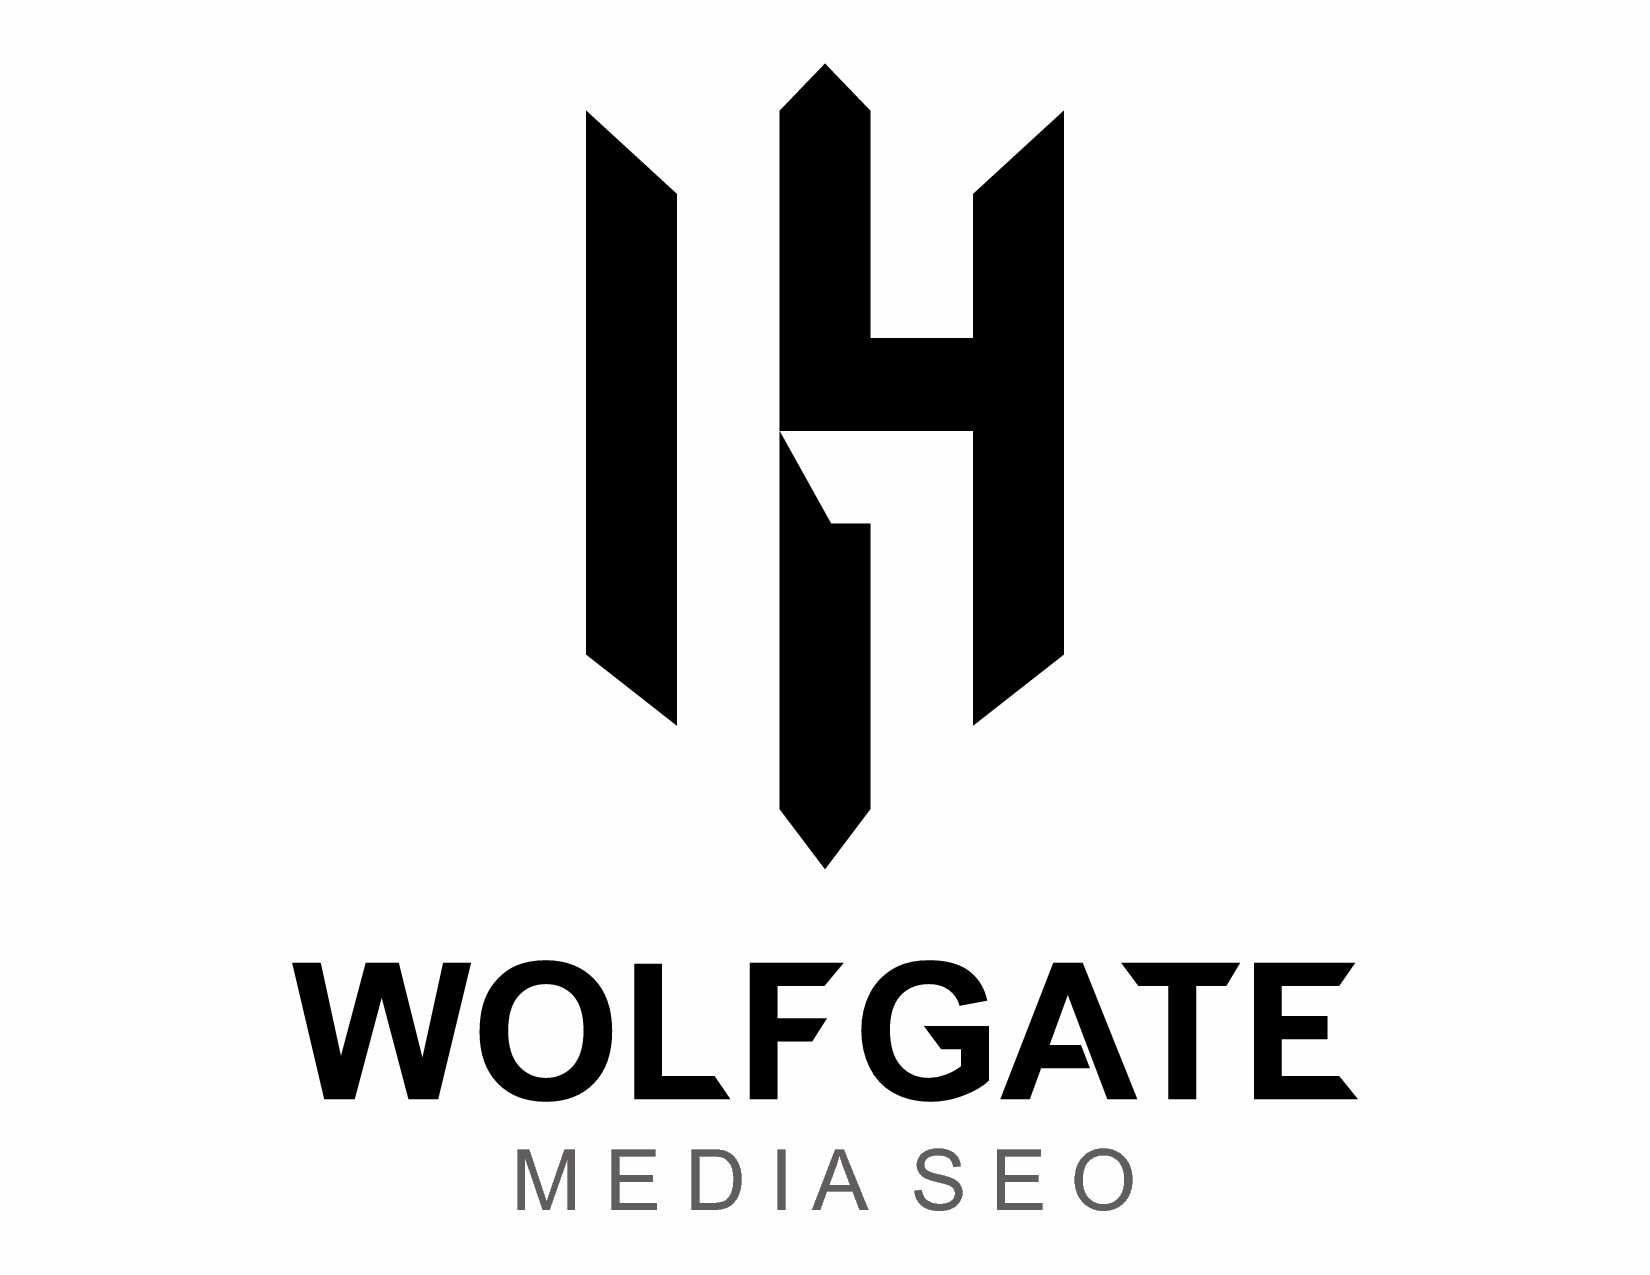 Wolfgate Media SEO needs a clean and cool logo